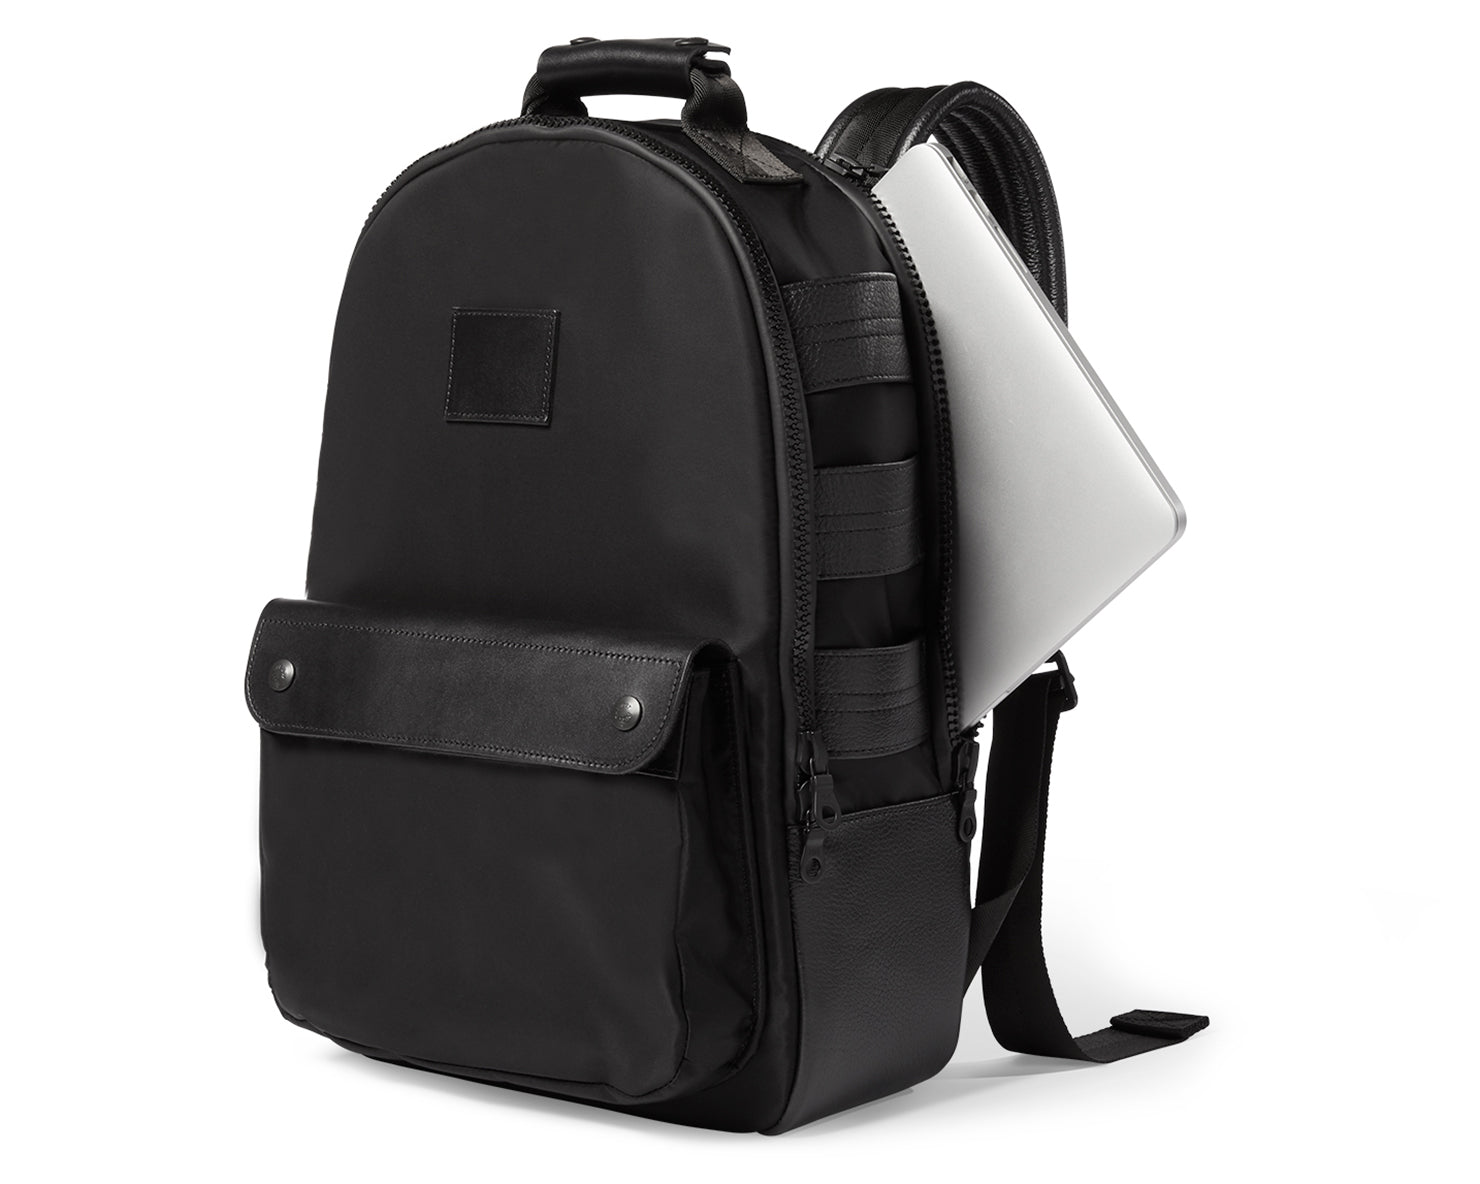 UTILITY BACKPACK | KILLSPENCER® - Black Italian Nylon and Leather